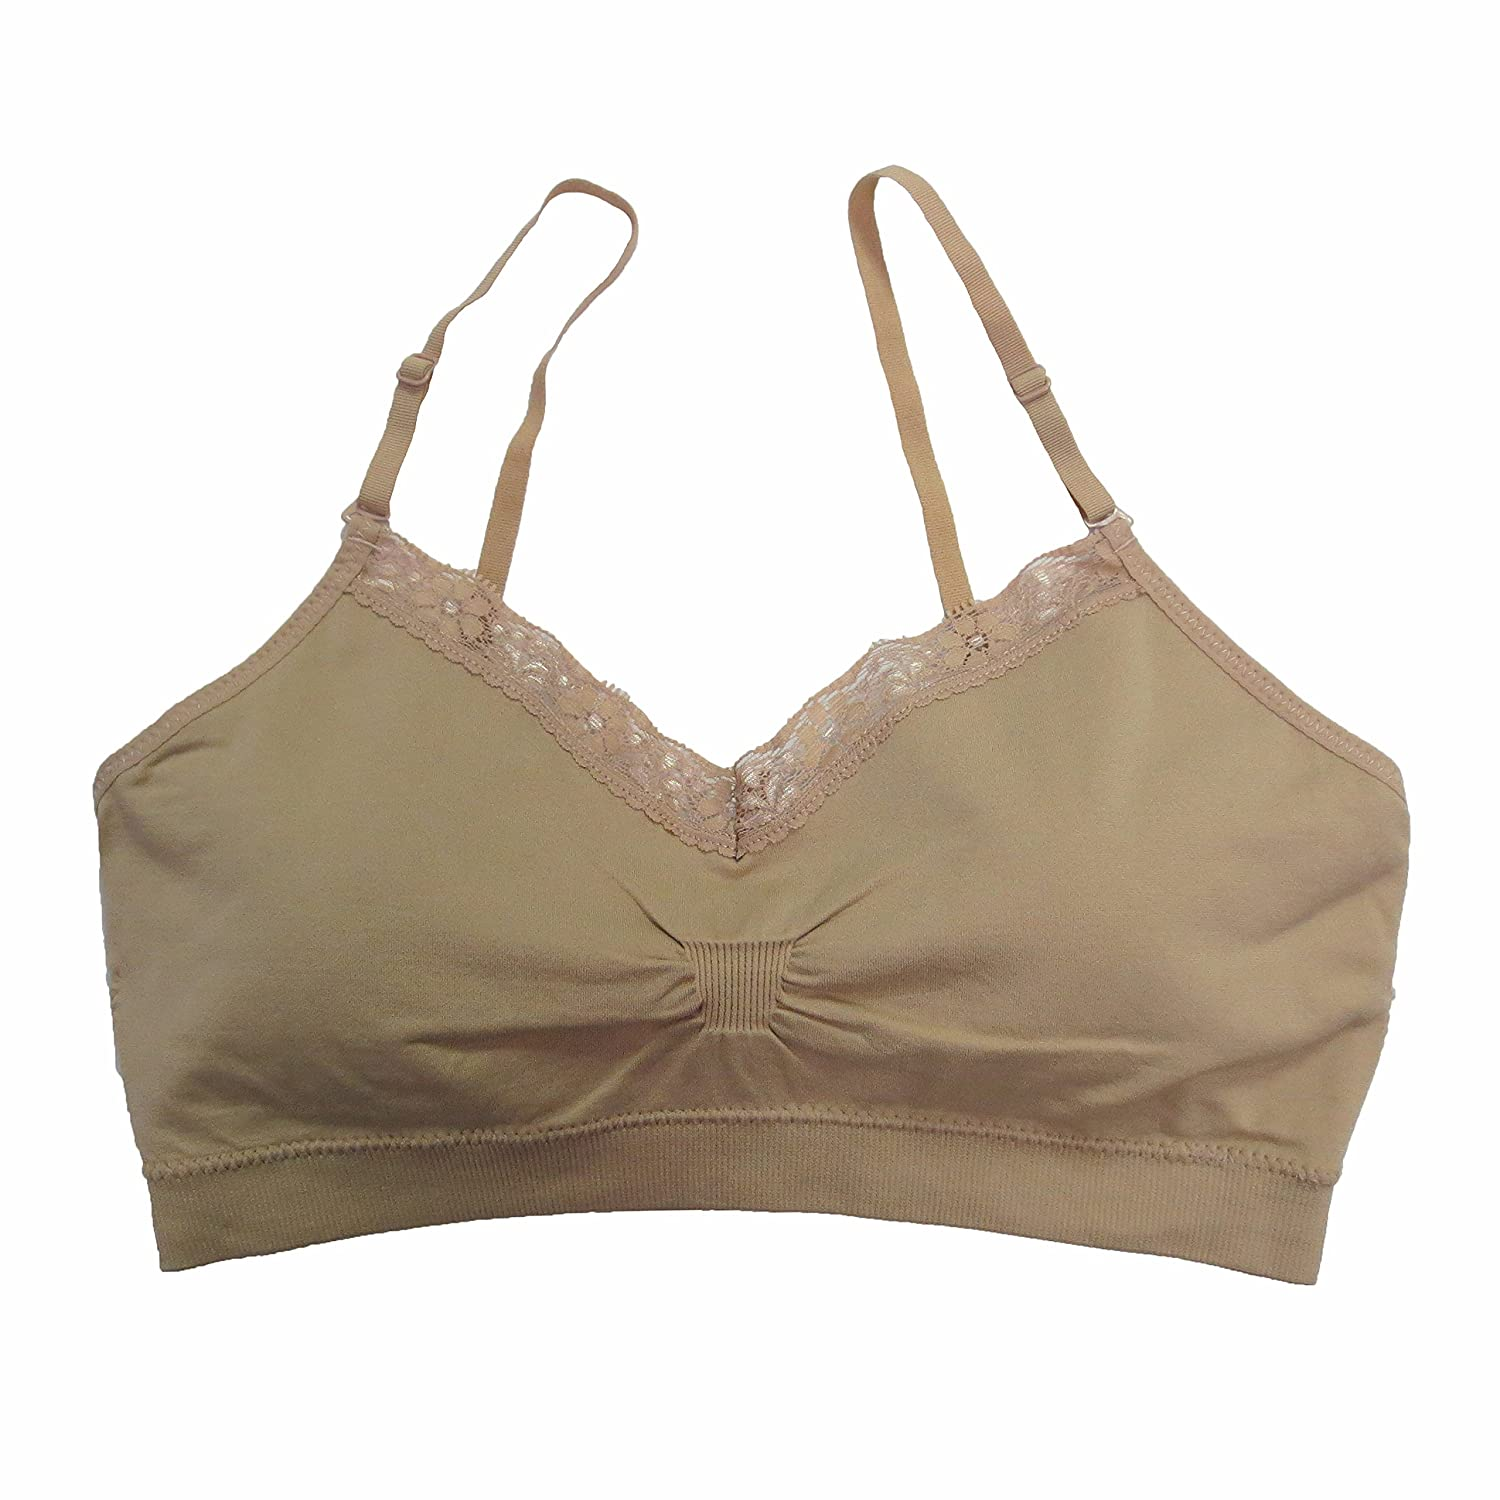 Coobie Women`s Seamless V-Neck Lace Trim Bra Dark Nude) 9042